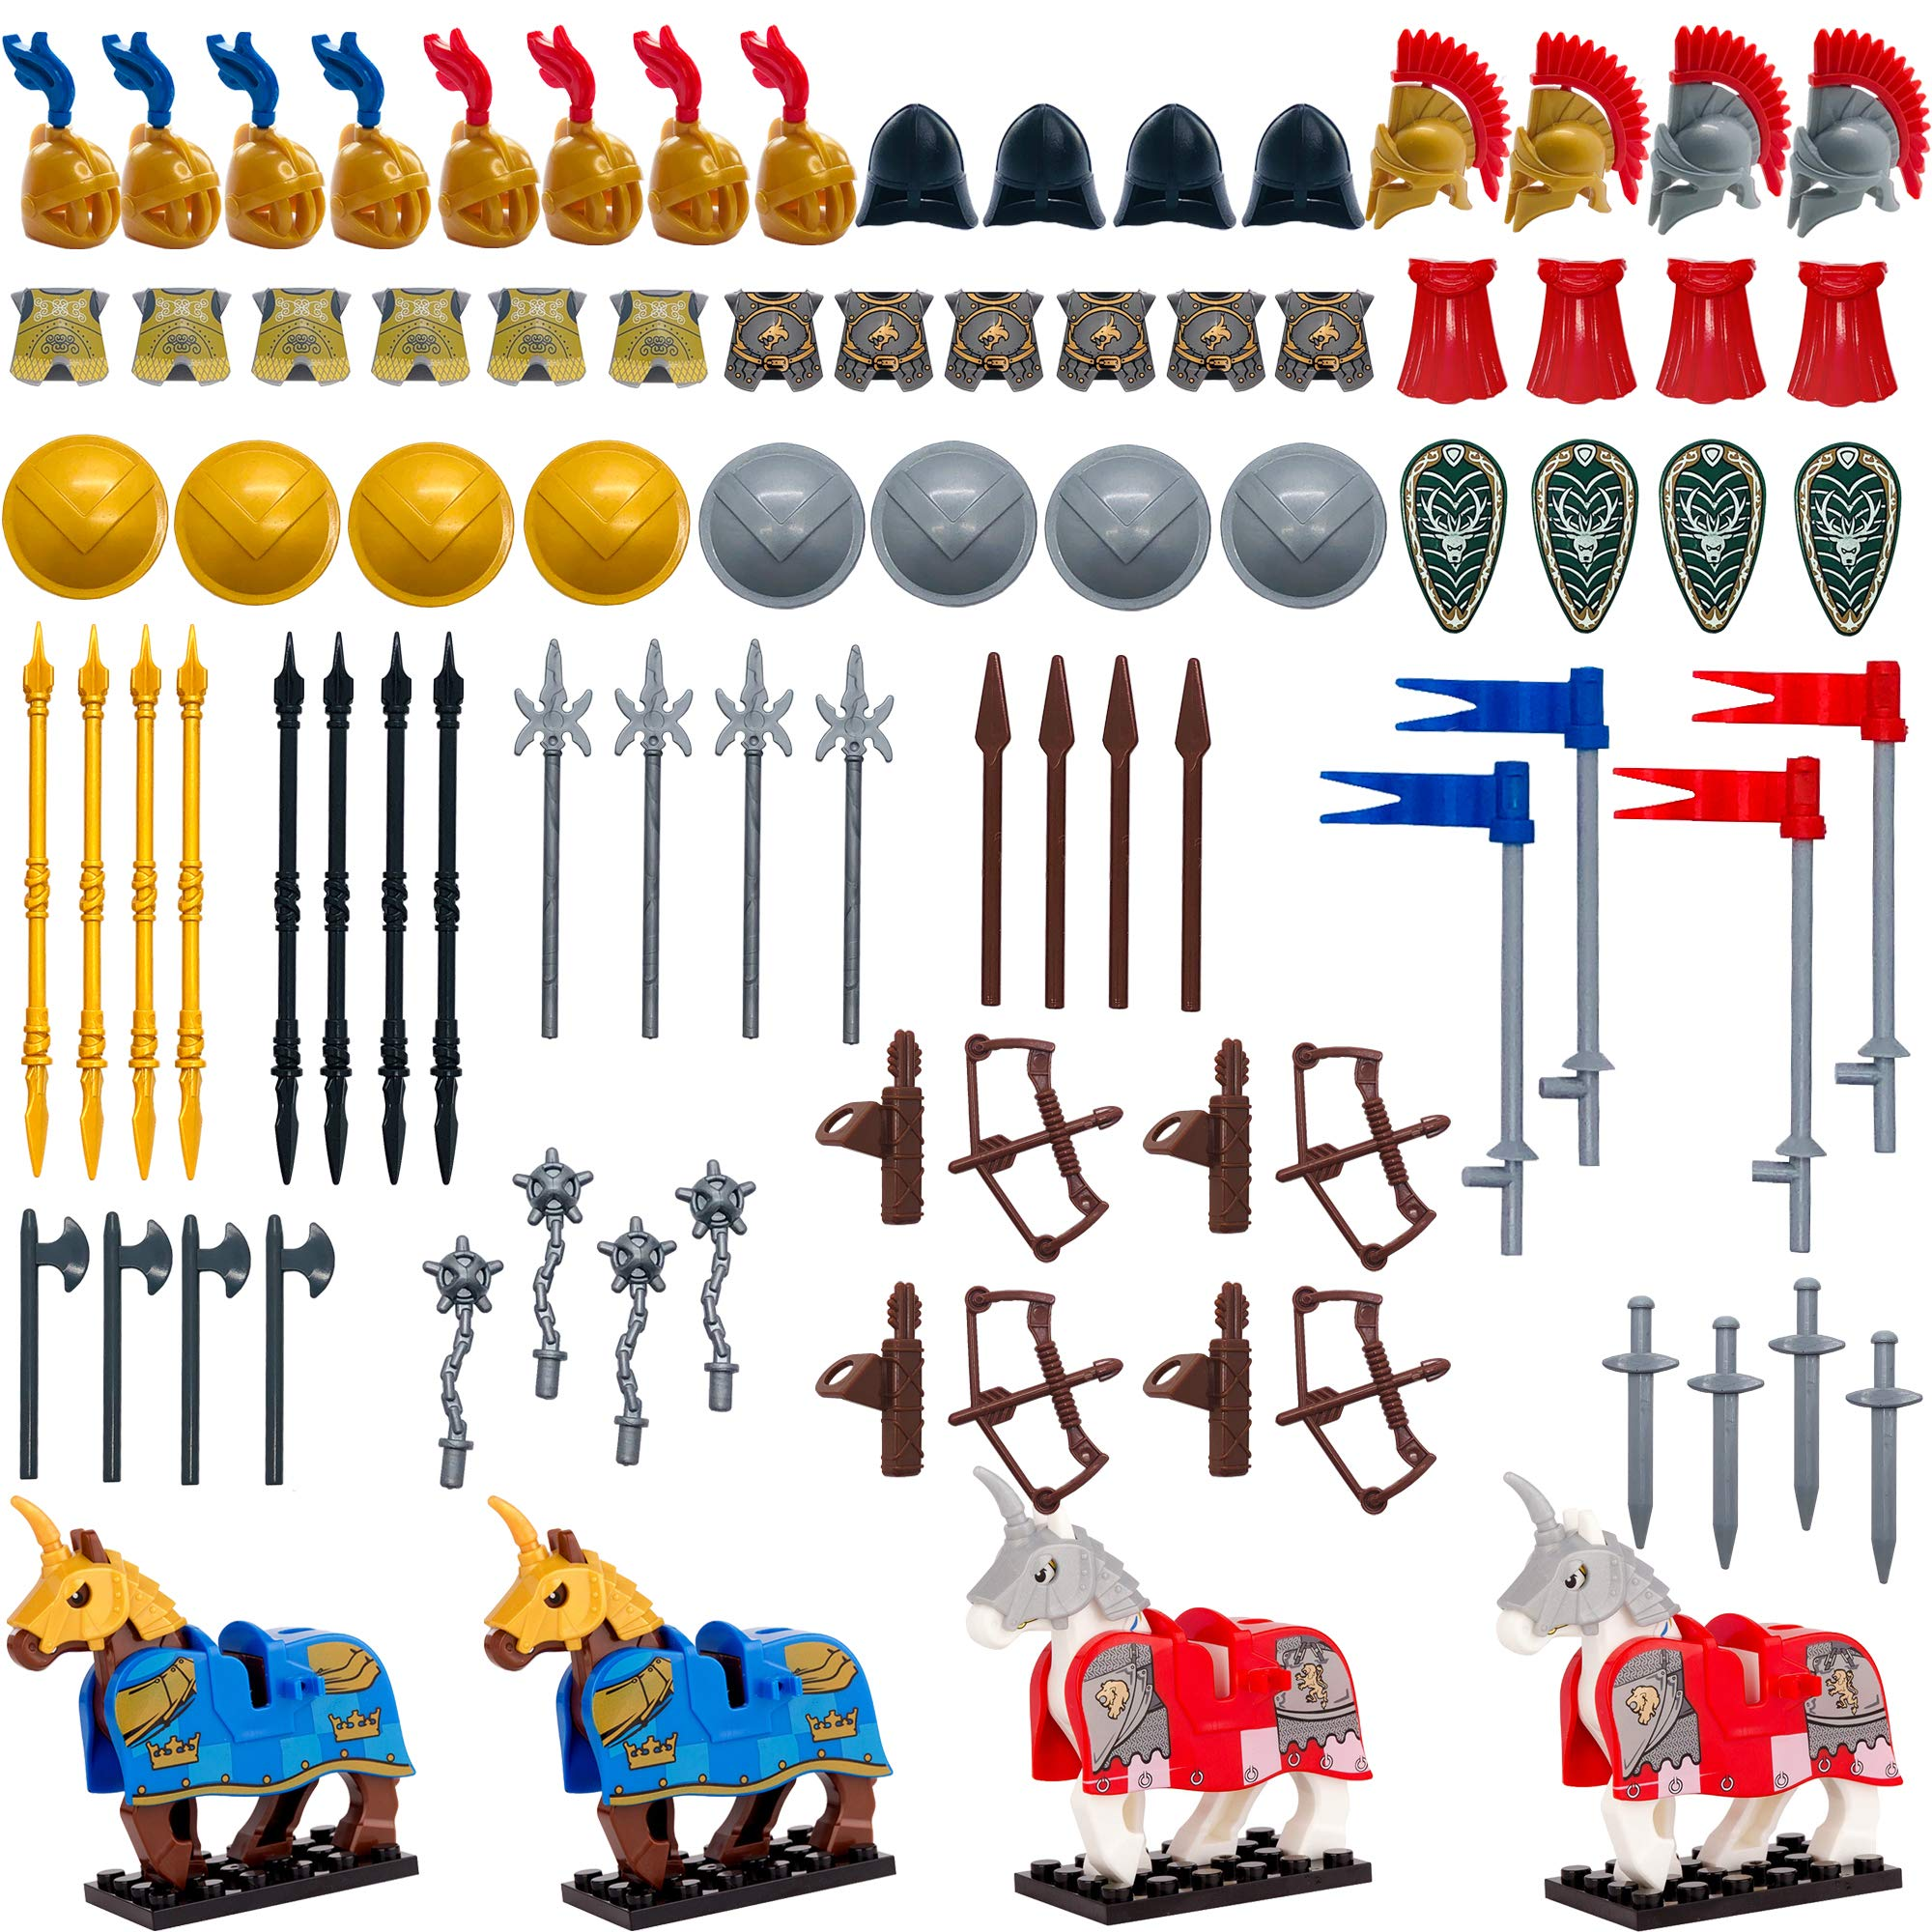 Taken All Custom Medieval Knight Weapons Pack Accessories kit Armor Helmet Shield Horses Bow Arrow for Kids Toys Compatible with Major Brands